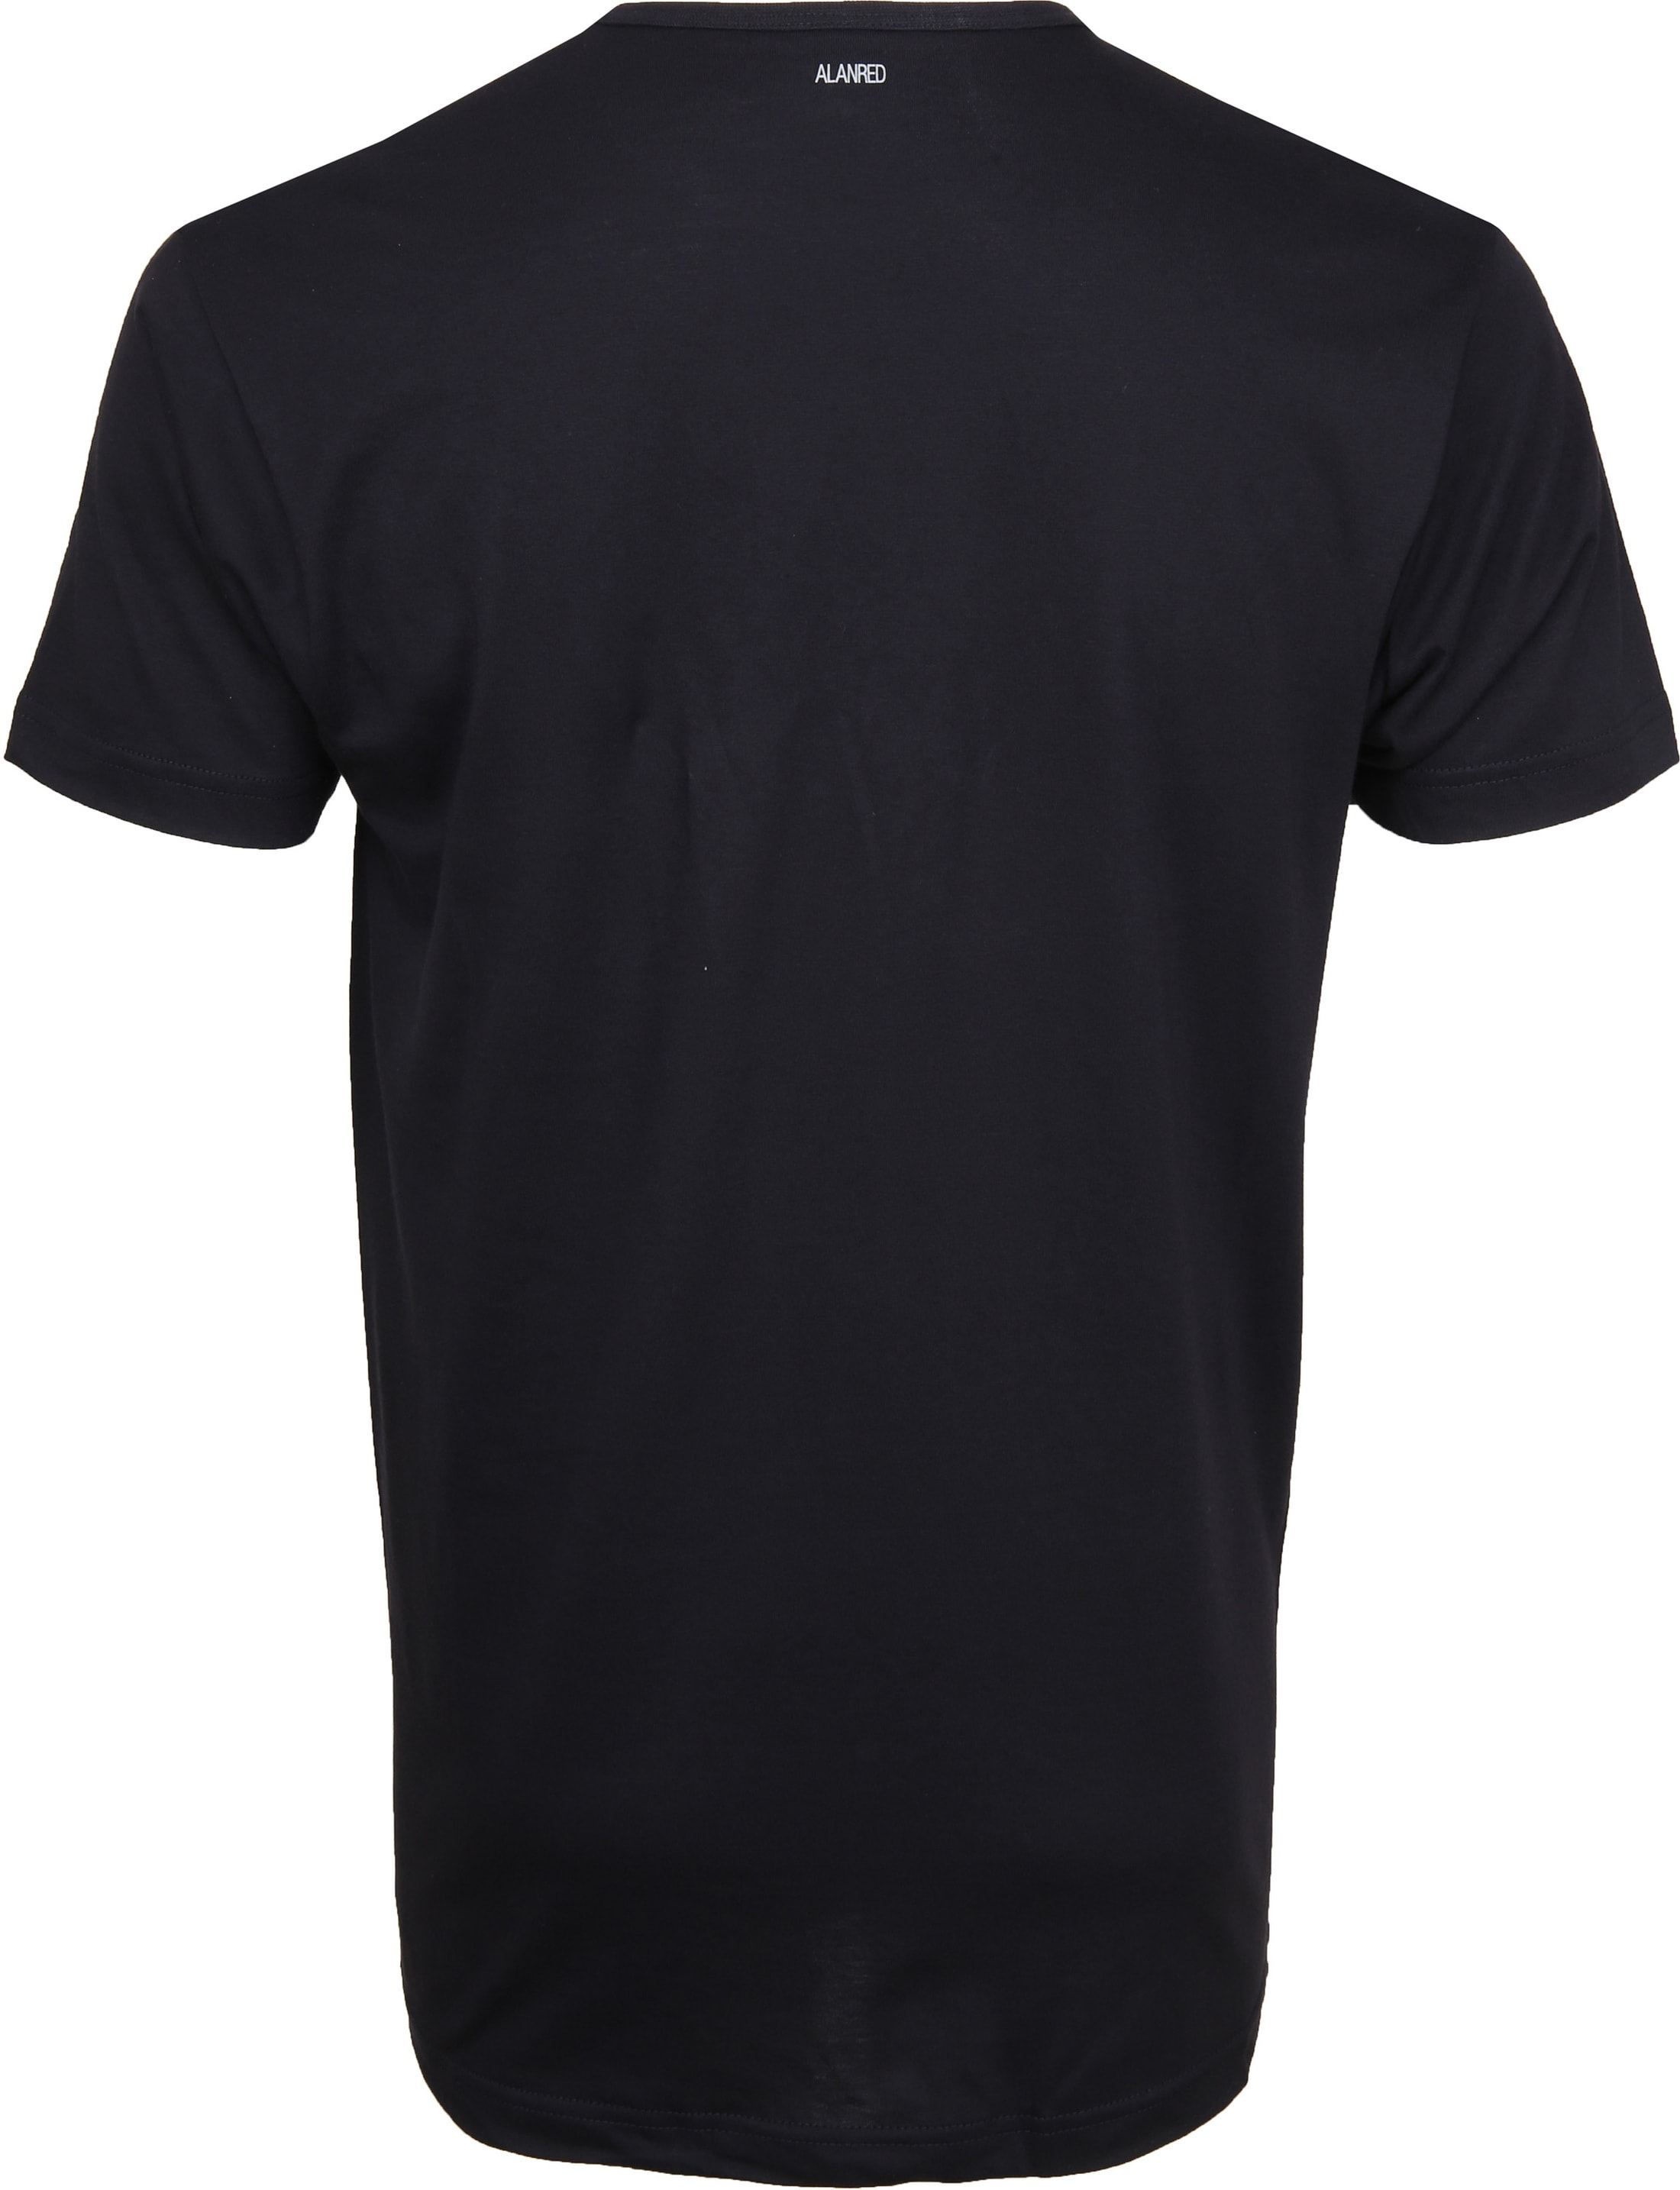 Alan Red Derby R-Neck T-Shirt Navy (2Pack) foto 4